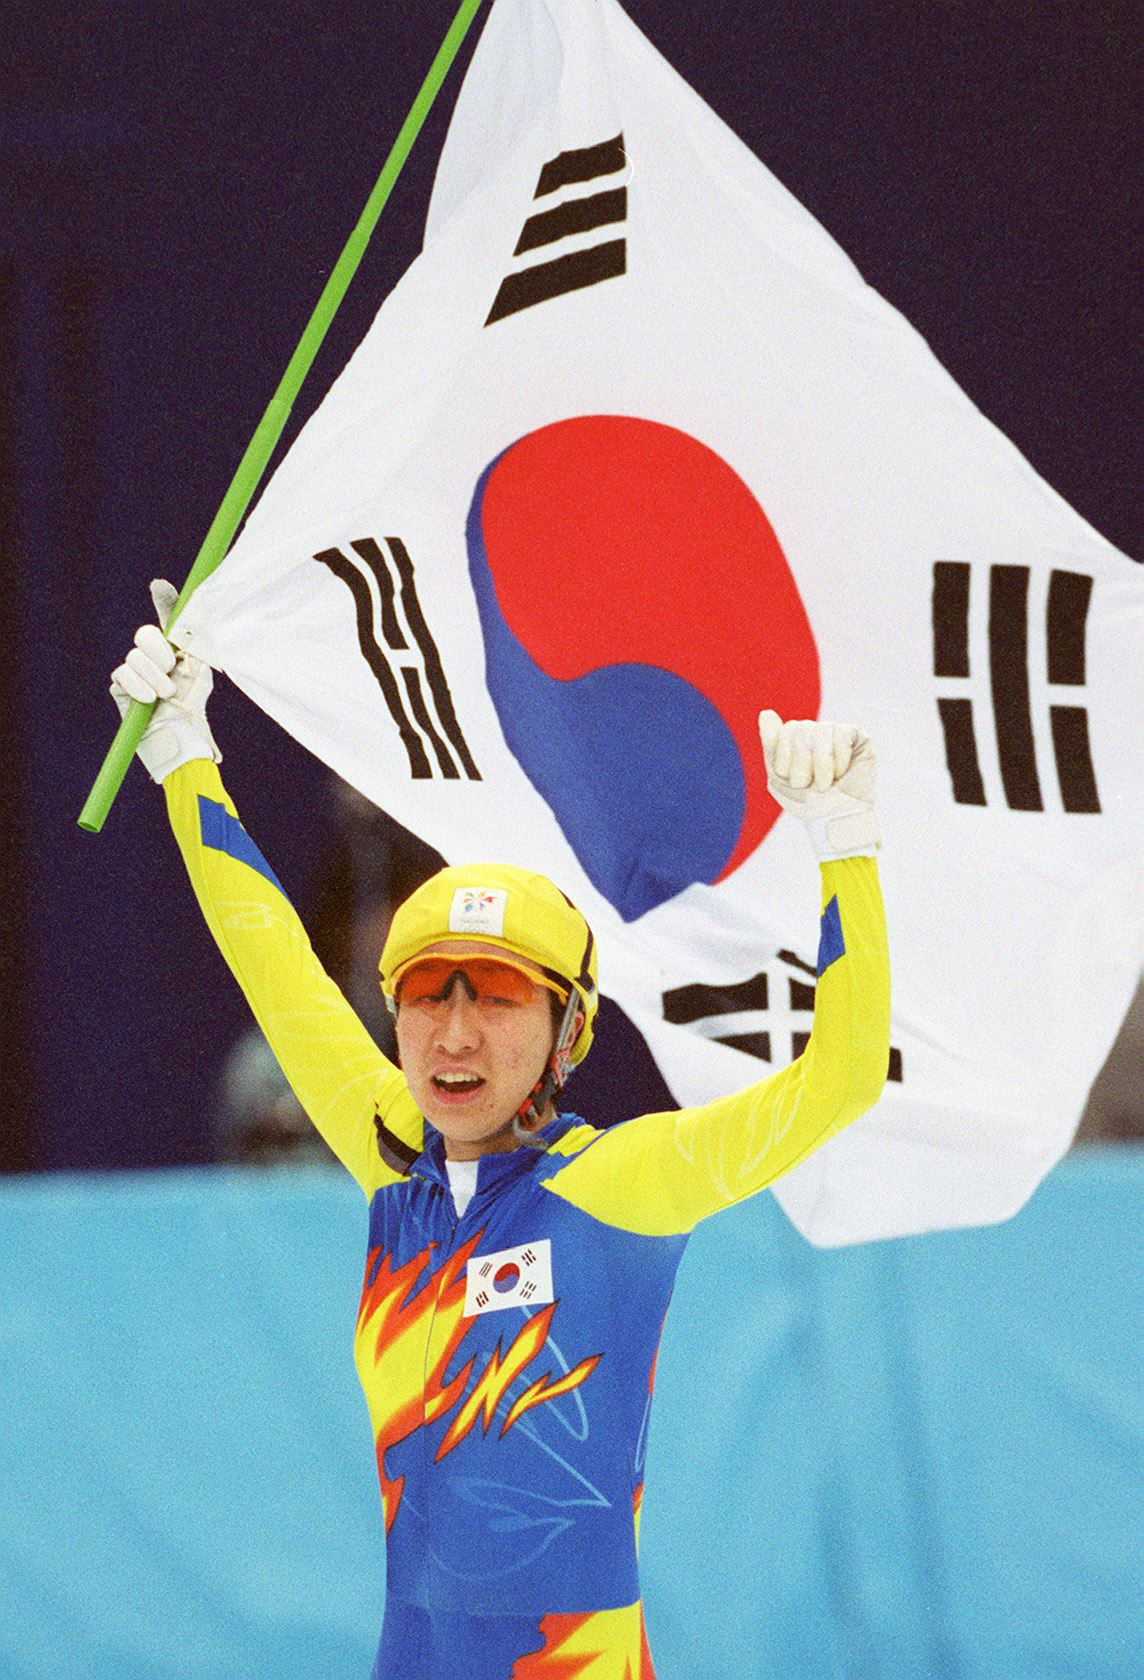 Chun Lee-kyung is among top South Korean short track speed skaters Jun Myung-kyu has helped reach the top ©Getty Images